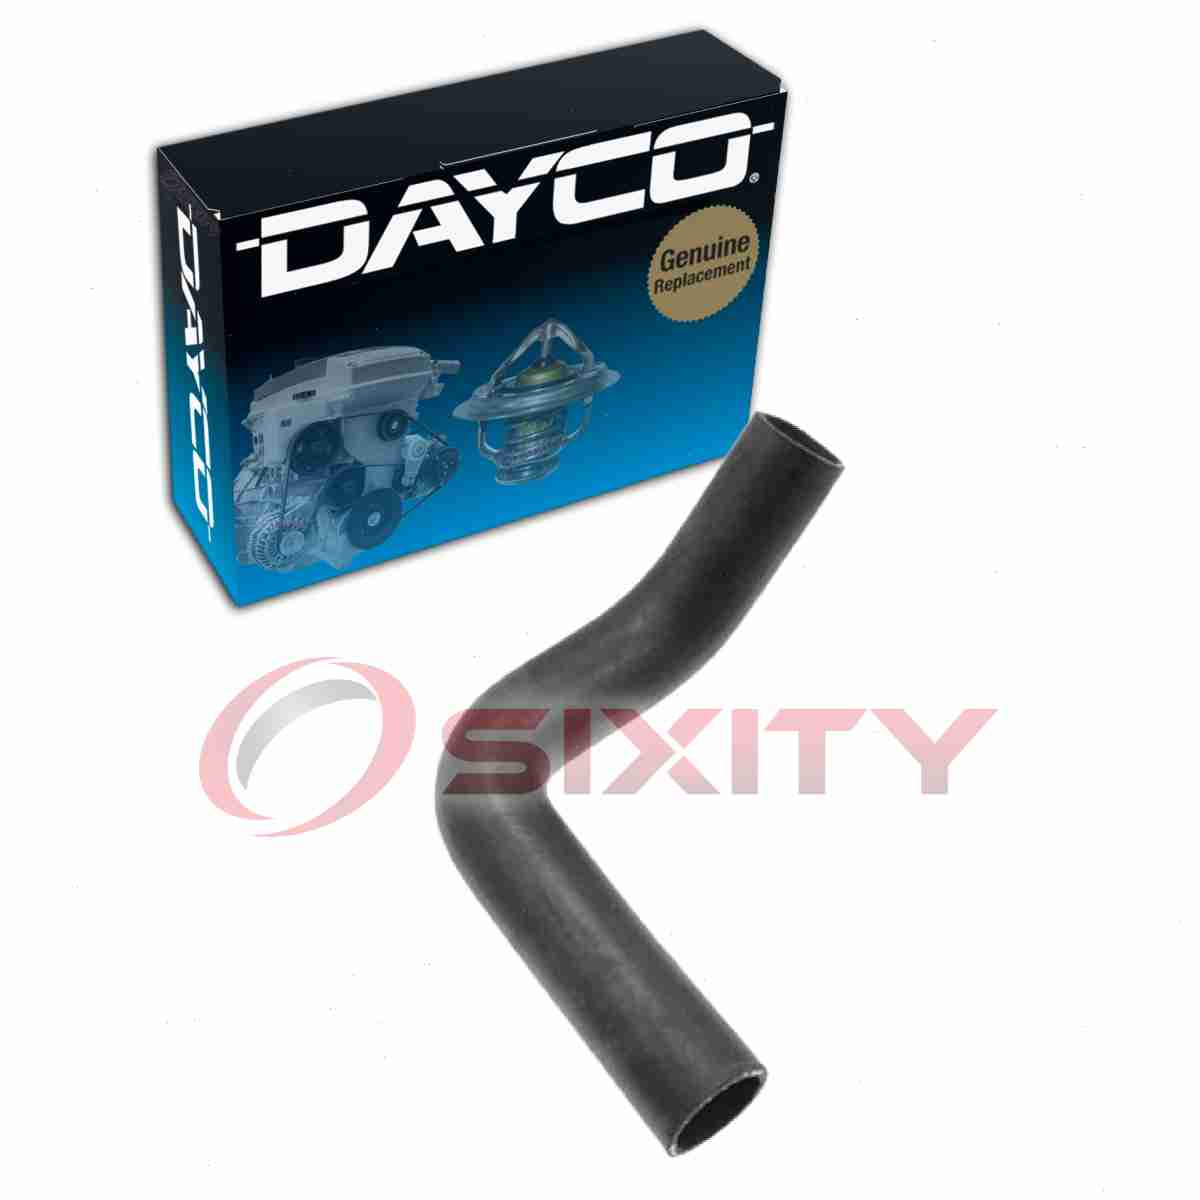 medium resolution of details about dayco lower radiator hose for 1962 buick skylark engine coolant heating vn